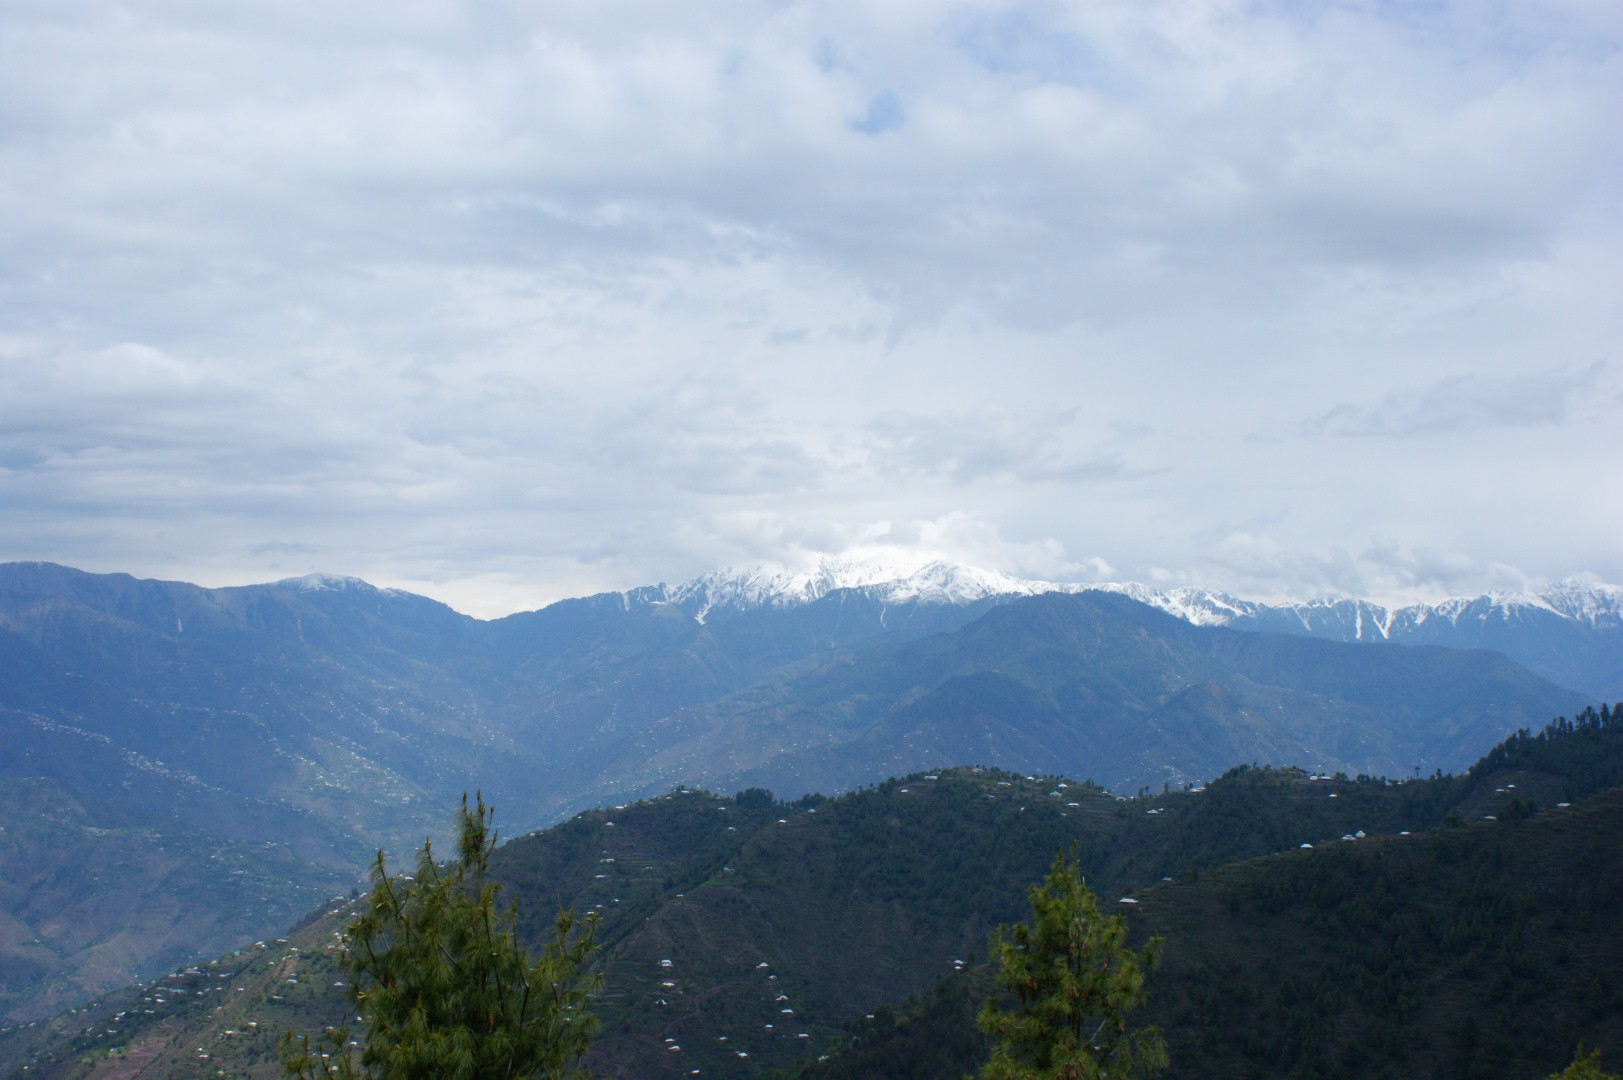 Trip to Muzaffarabad & Pir Channasi April-May 2012-nomi700 - 7537135686 a80afd8618 o